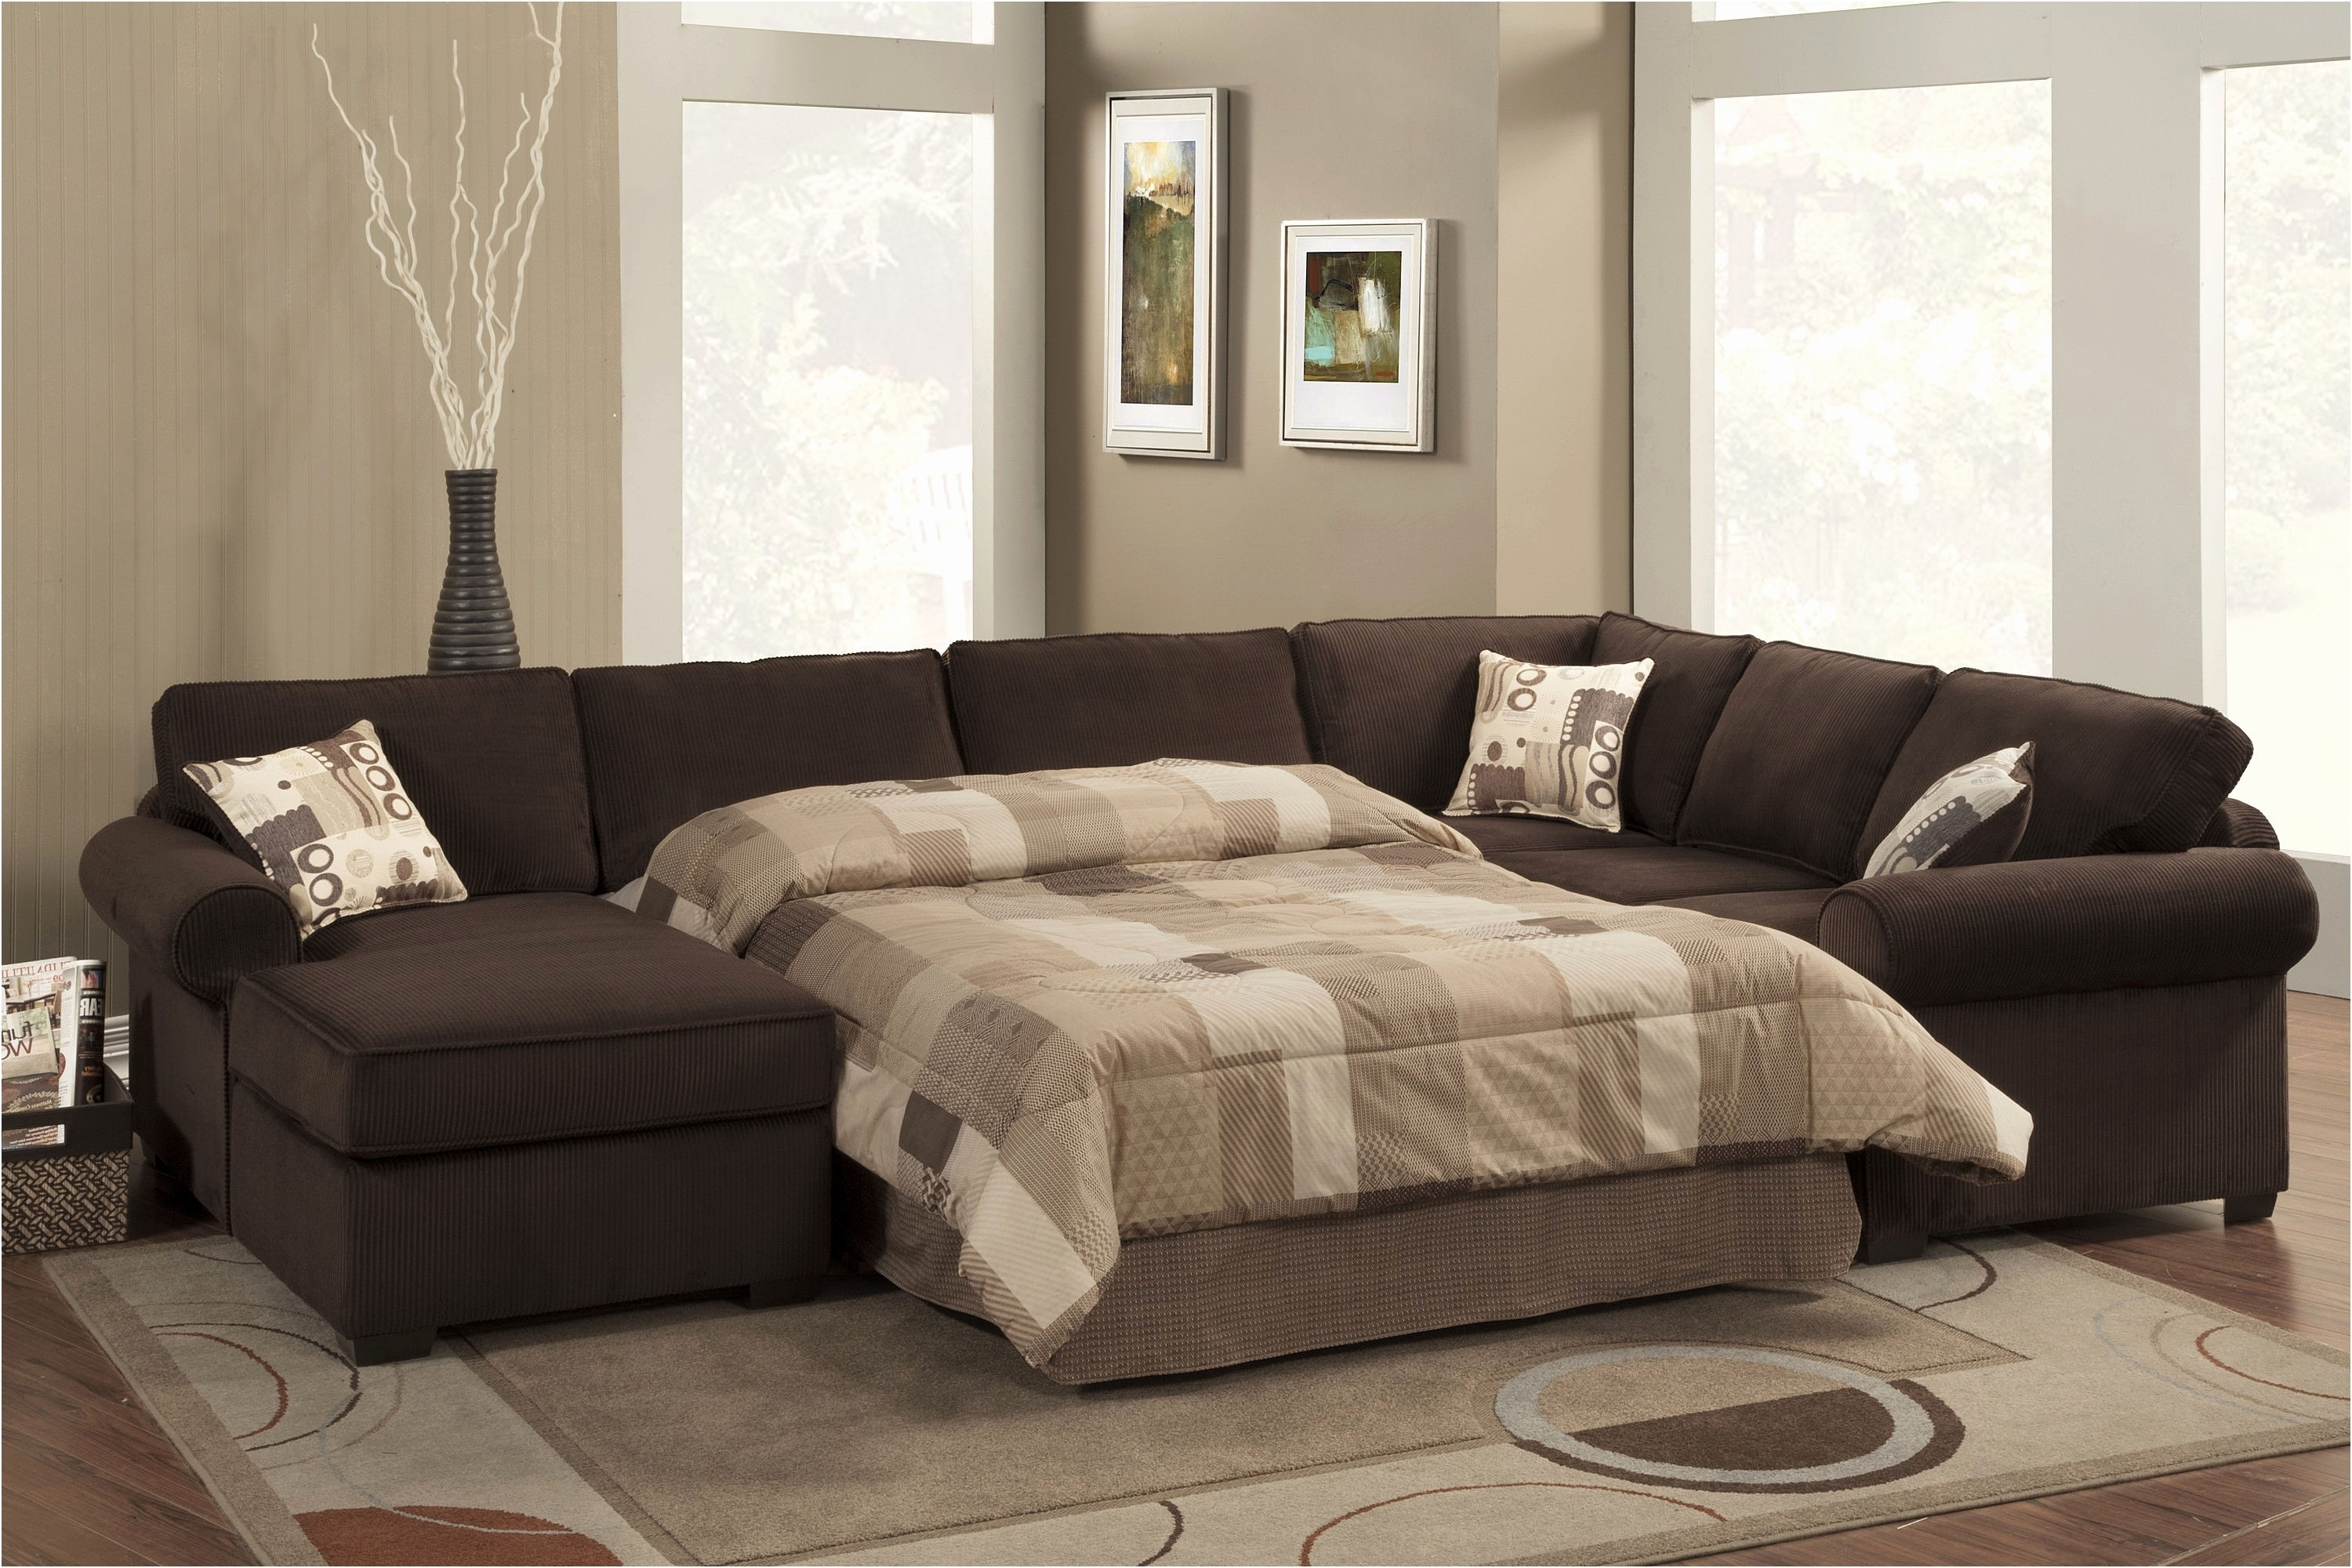 Ikea Sectional Sleeper Sofas With Preferred New Sectional Sofa Pull Out Bed Lovely – Intuisiblog (View 8 of 20)